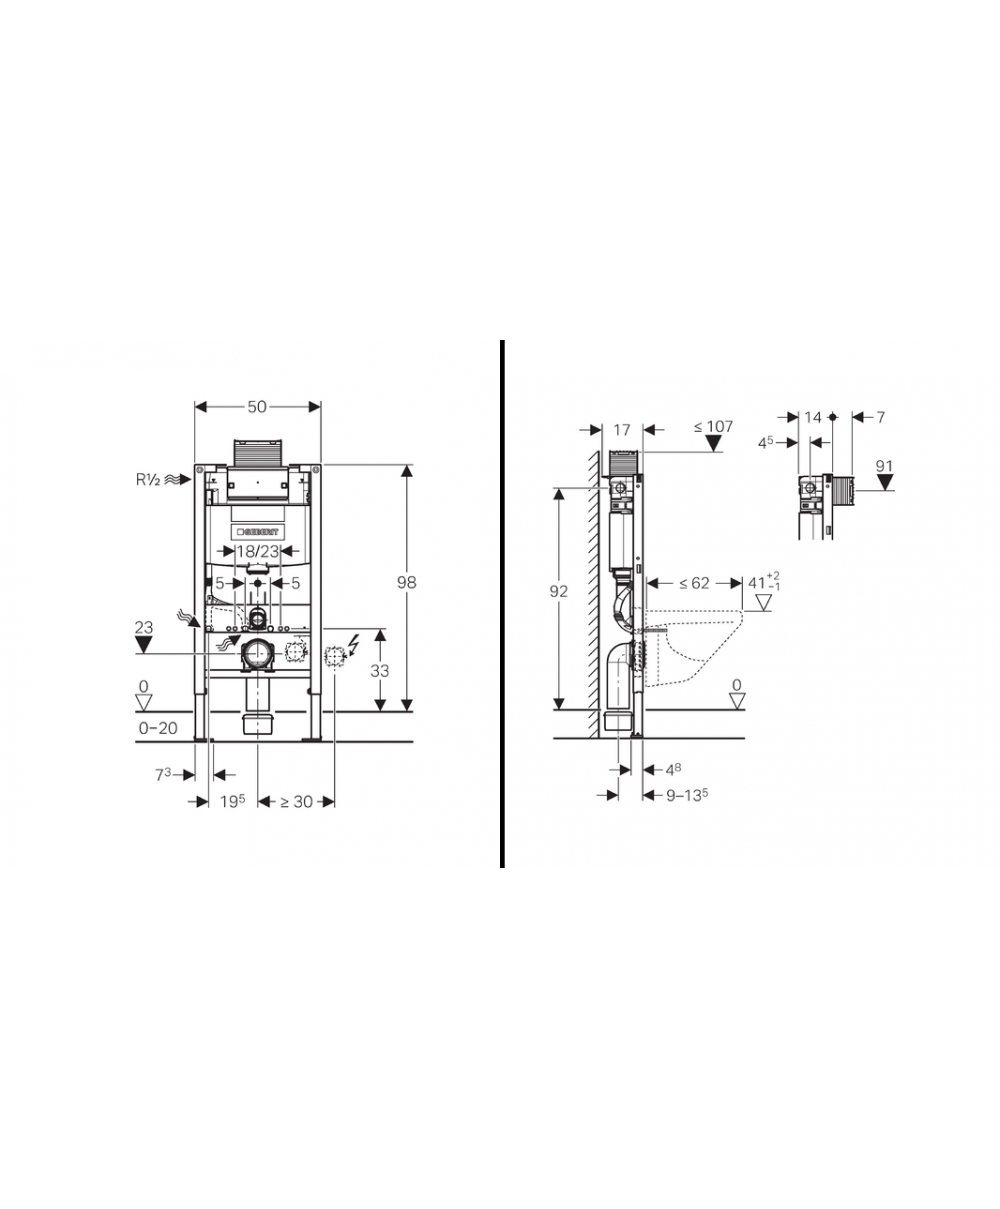 Geberit duofix frame for wall hung wc h82 with omega cistern 12cm - Geberit Duofix Frame For Wall Hung Wc H82 With Omega Cistern 12cm 7